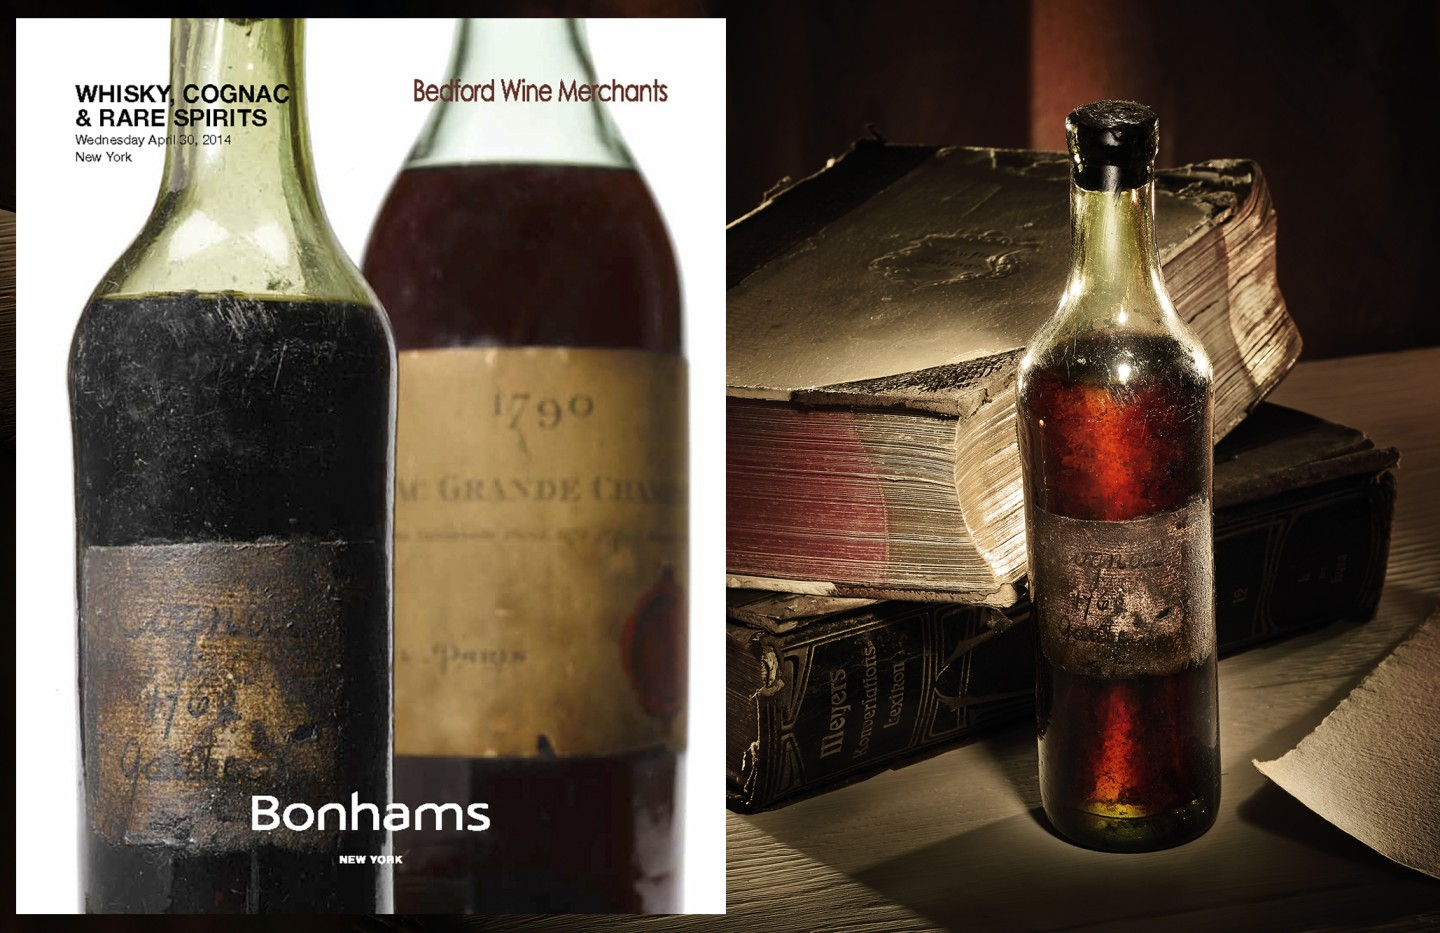 This small bottle of 1762 Gautier Cognac was auctioned by Bonhams in New York on April 30, 2014, selling to an online bidder for a final price of $59,500.